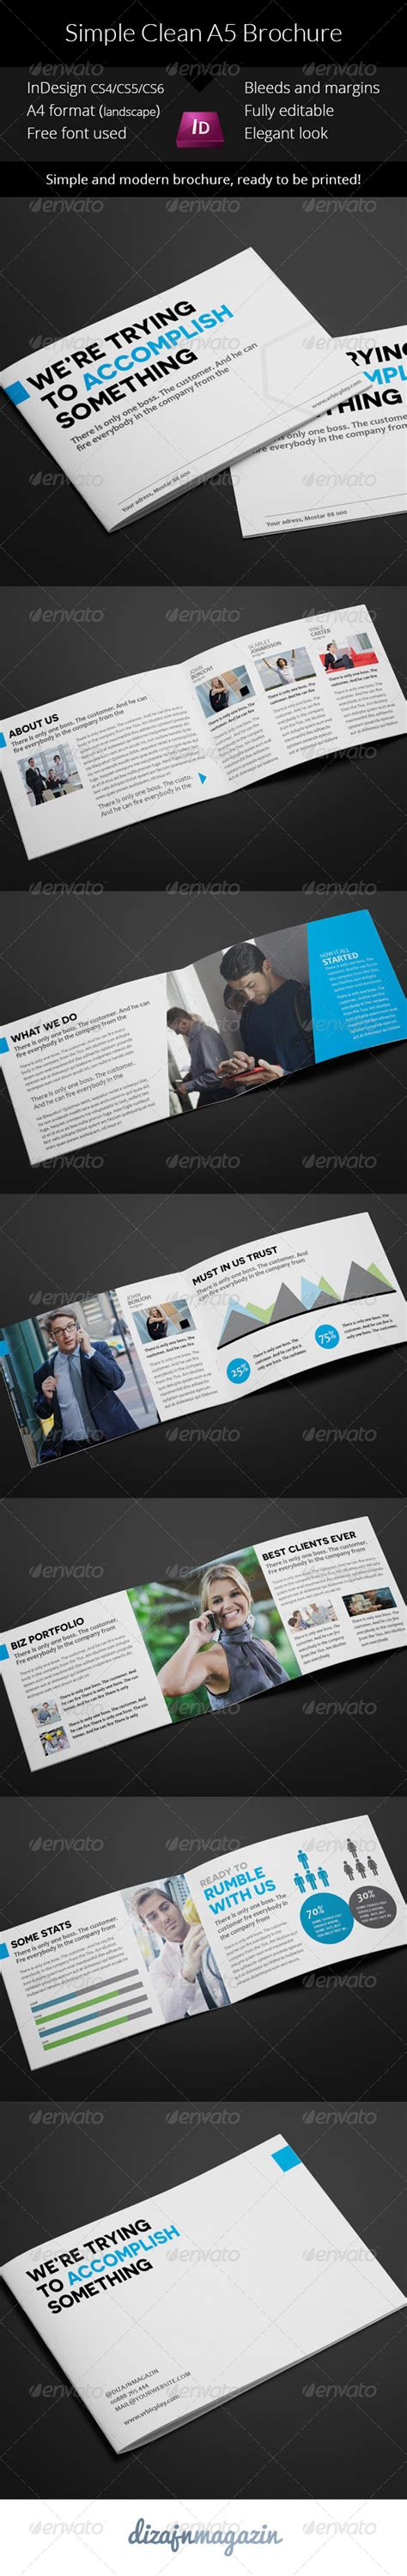 Simple Clean A5 Brochure Indesign Template By Vrbic Graphicriver A5 Brochure Template Indesign